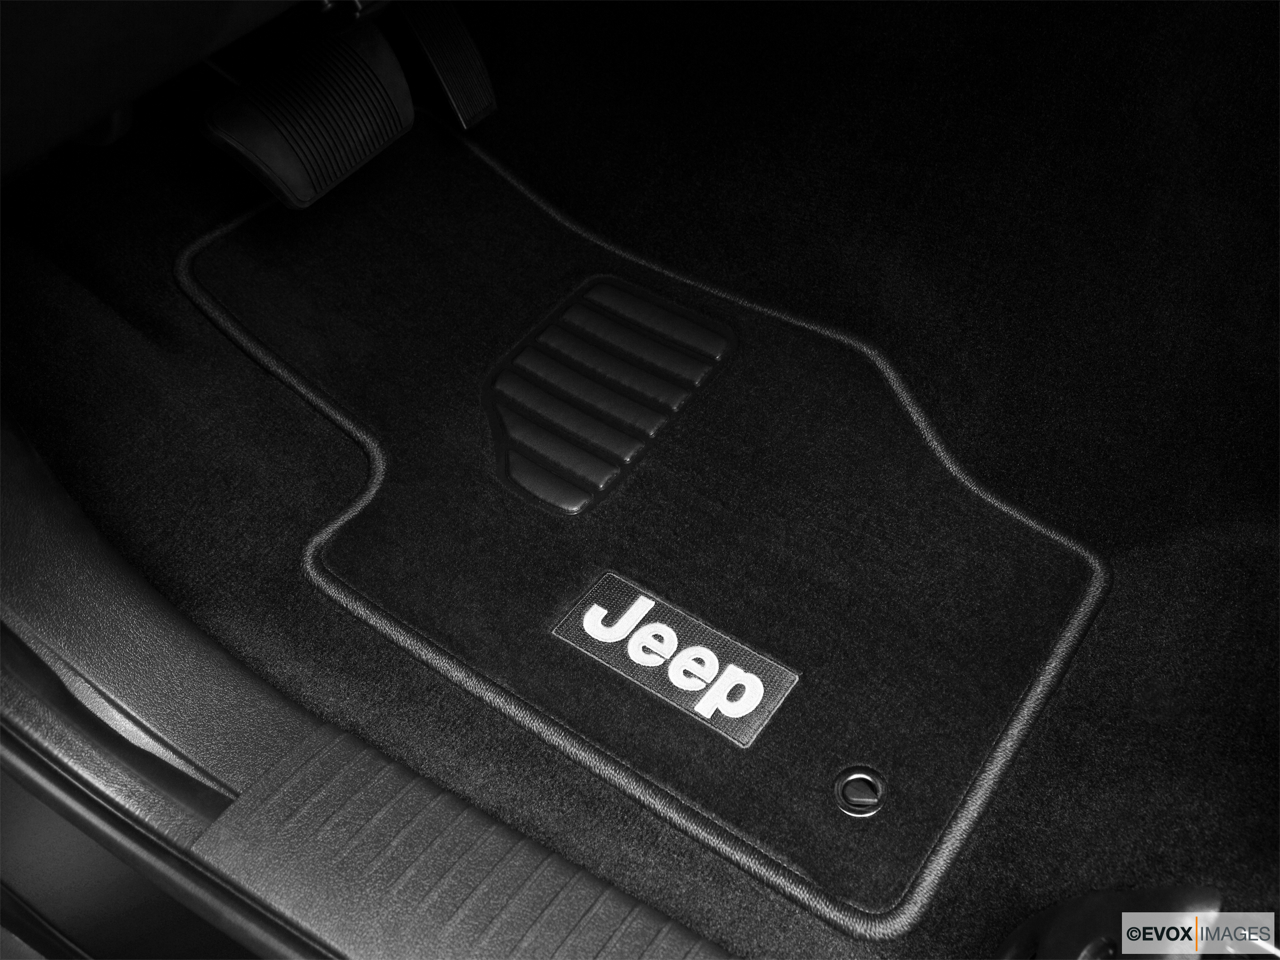 2010 Jeep Commander Limited Driver's floor mat and pedals. Mid-seat level from outside looking in.